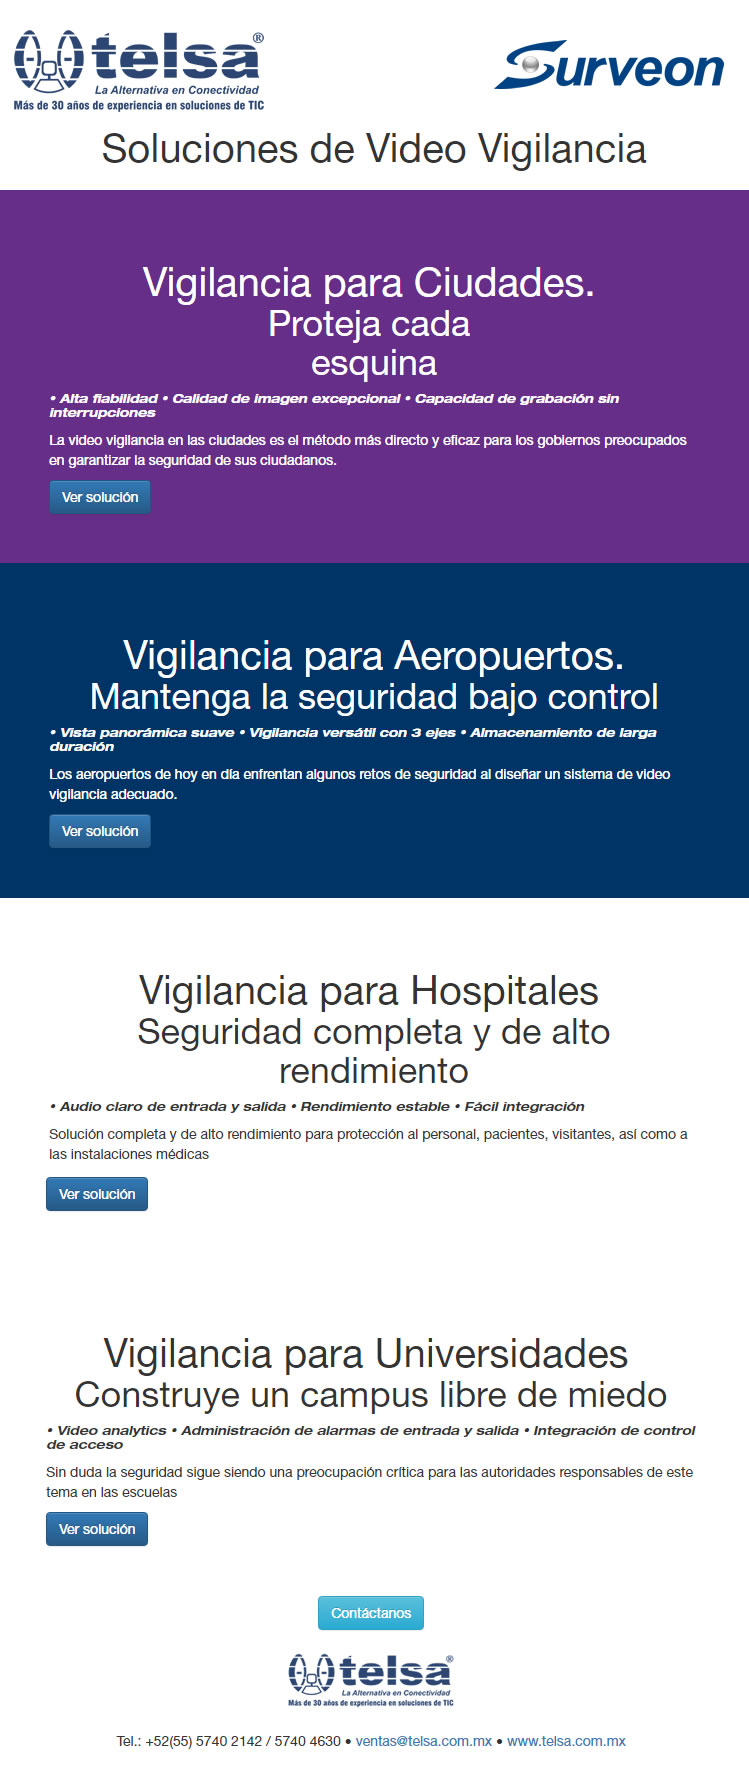 SURVEON: Soluciones de Video Vigilancia, ¡Contáctanos!